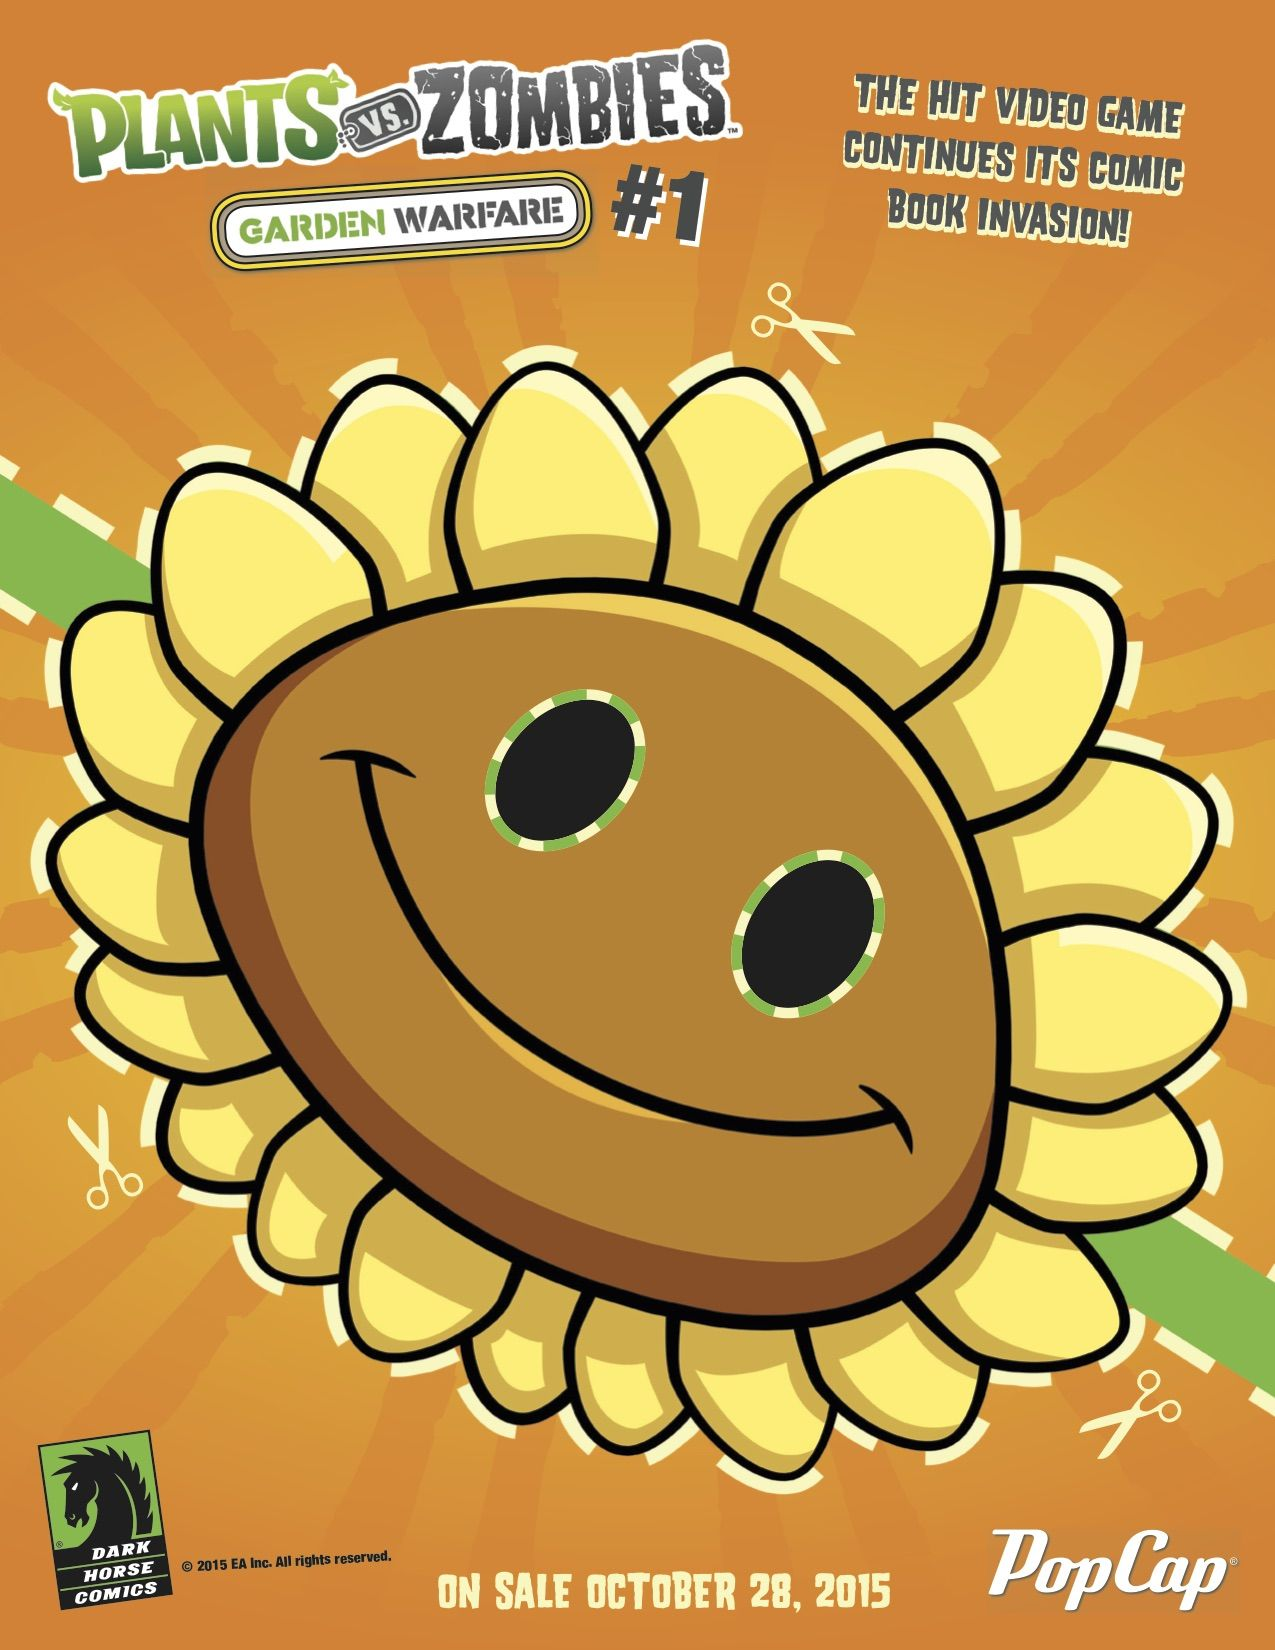 Free Printable Plants vs Zombies Masks Just In Time For Halloween ...